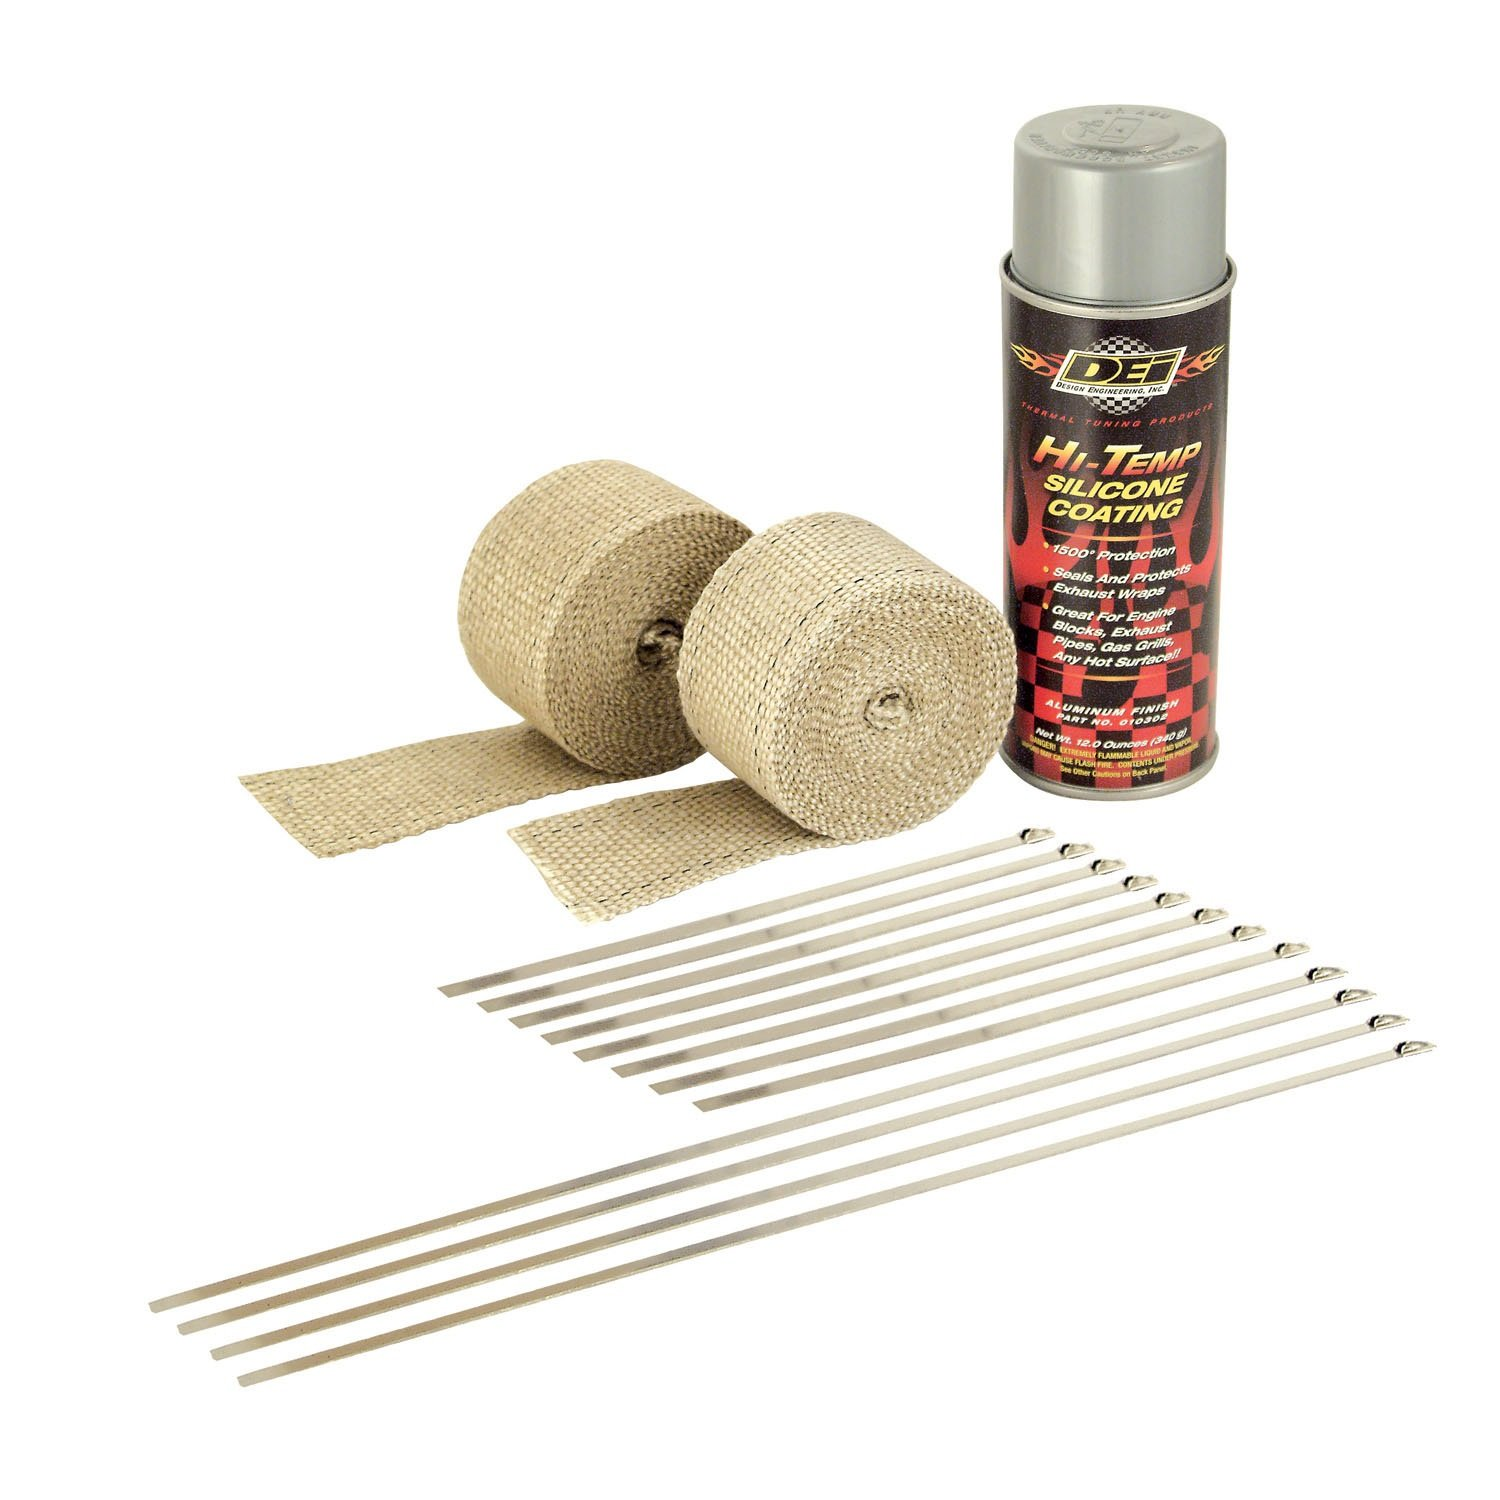 Design Engineering DEI 010331 Motorcycle Exhaust Pipe Wrap Kit with Hi-Temp Silicone Coating Spray - Tan Wrap/Aluminum Spray